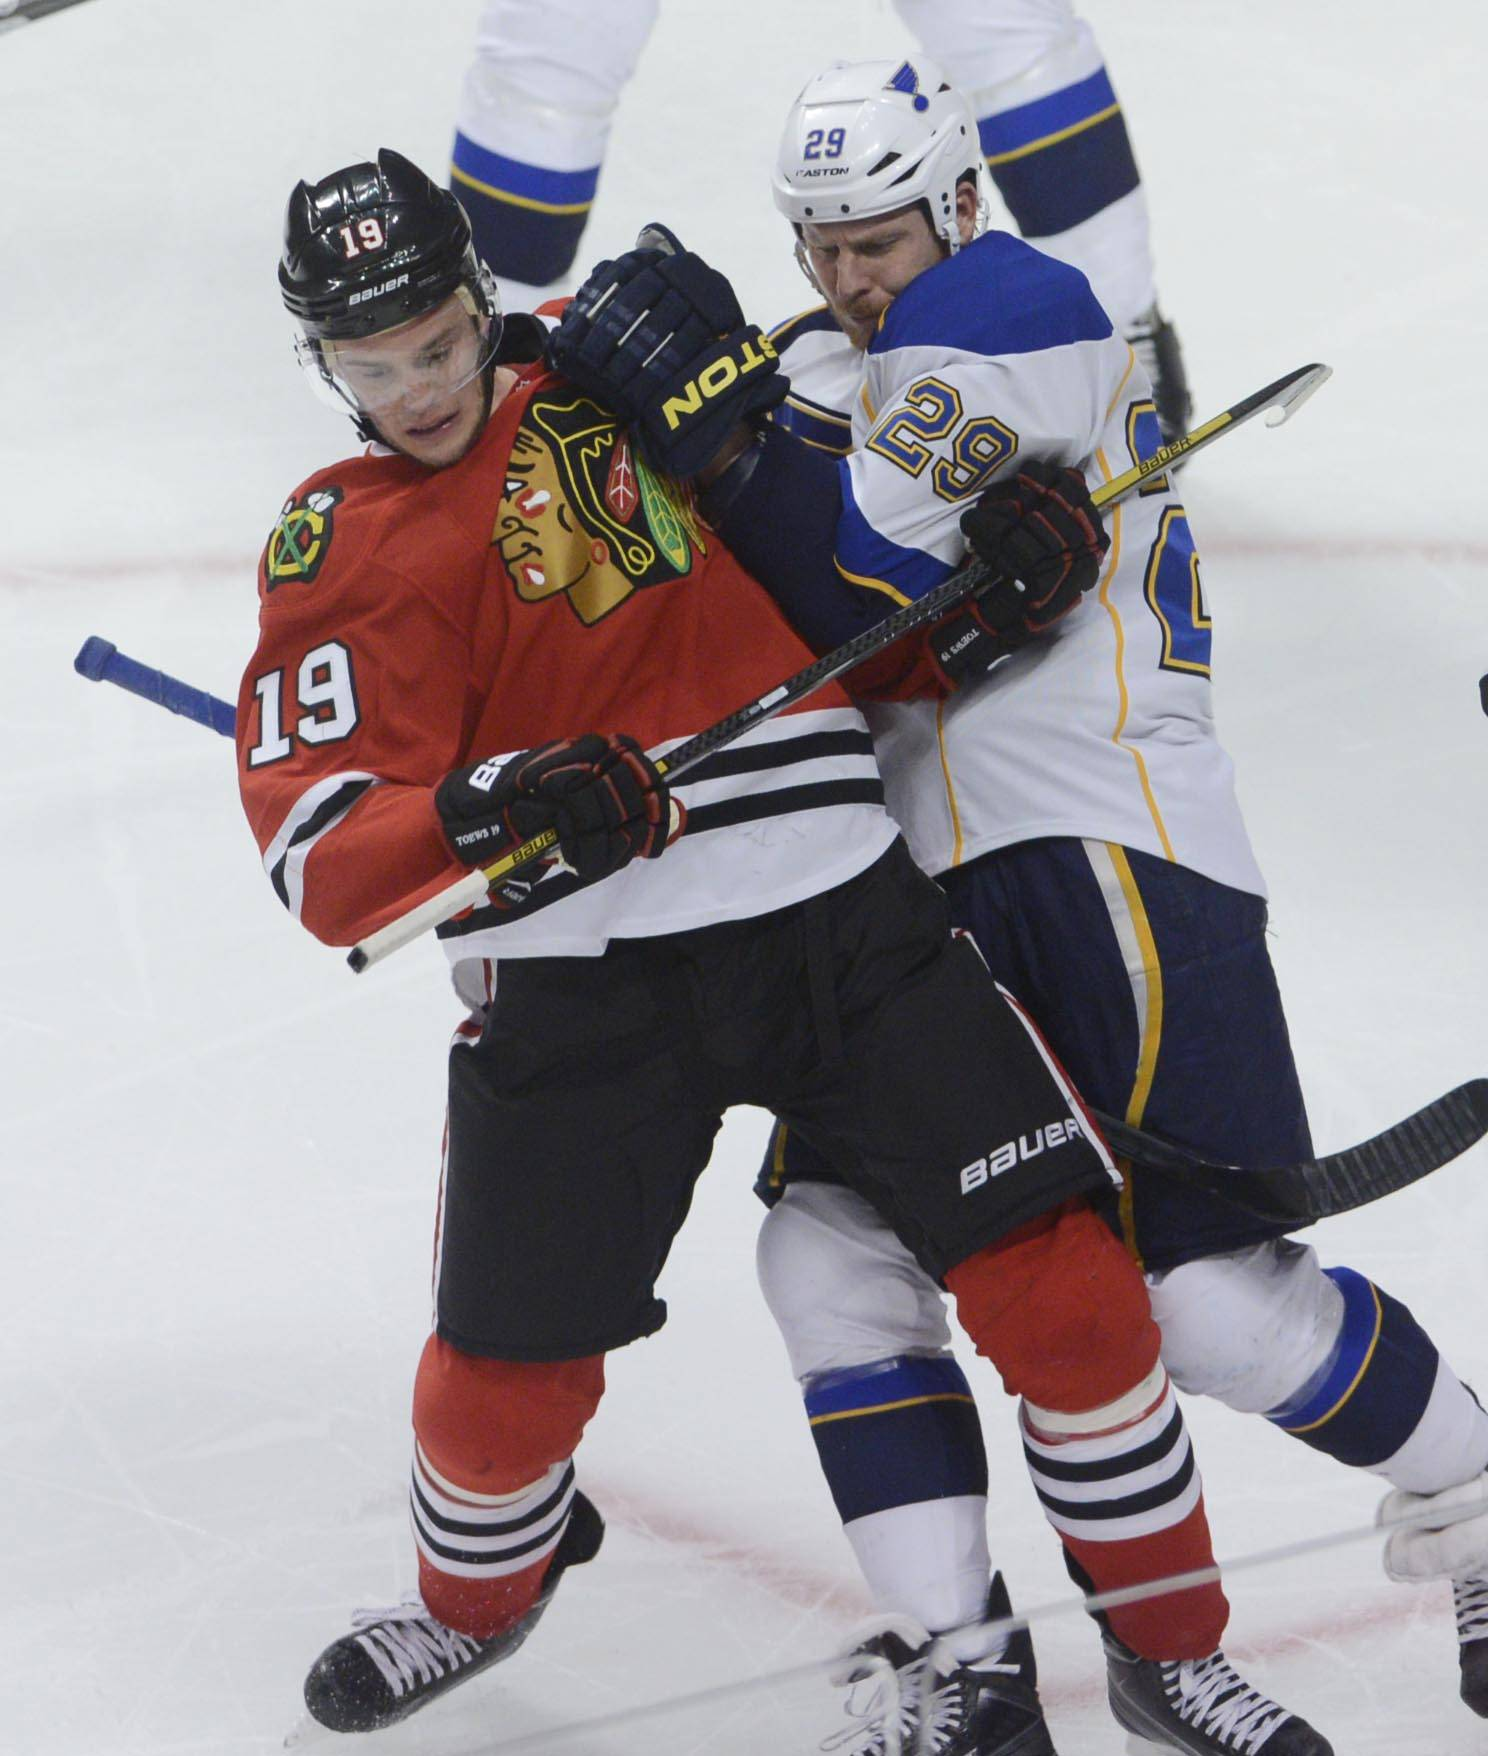 Chicago Blackhawks center Jonathan Toews is held by St. Louis Blues center Steve Ott Sunday in Game 6 of the NHL first round playoffs at the United Center in Chicago.